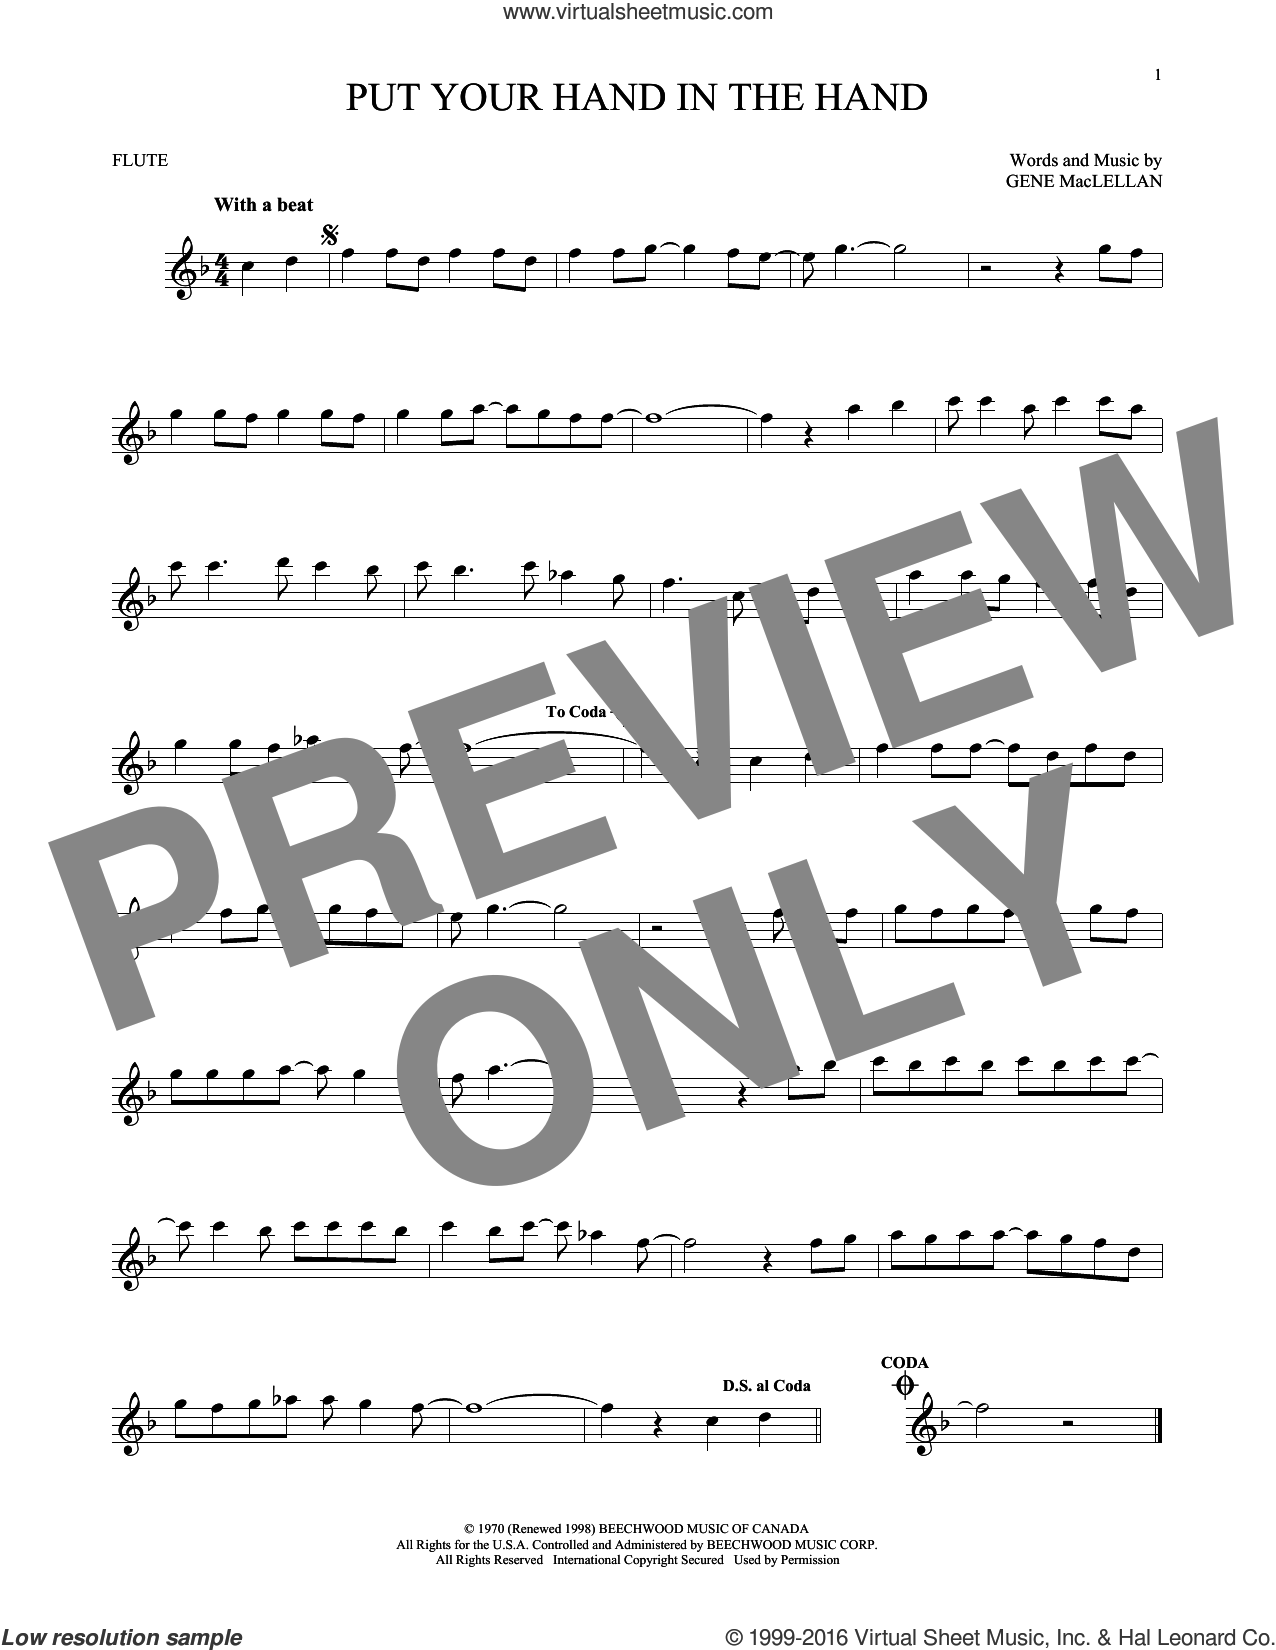 Put Your Hand In The Hand sheet music for flute solo by Ocean. Score Image Preview.